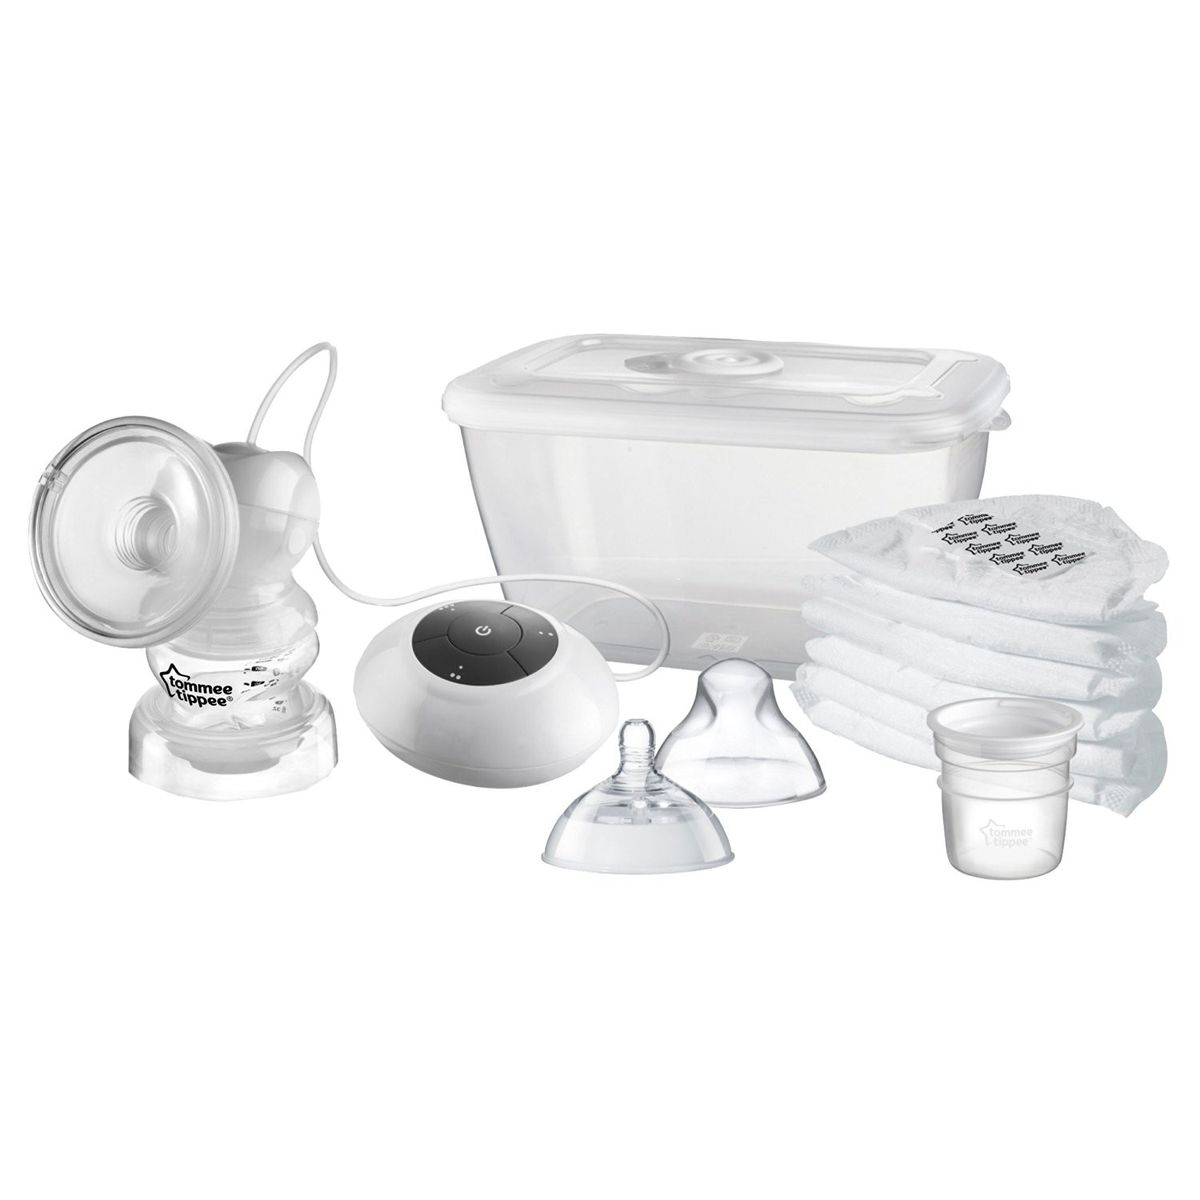 tommee tippee electronic breast pump buy online in south